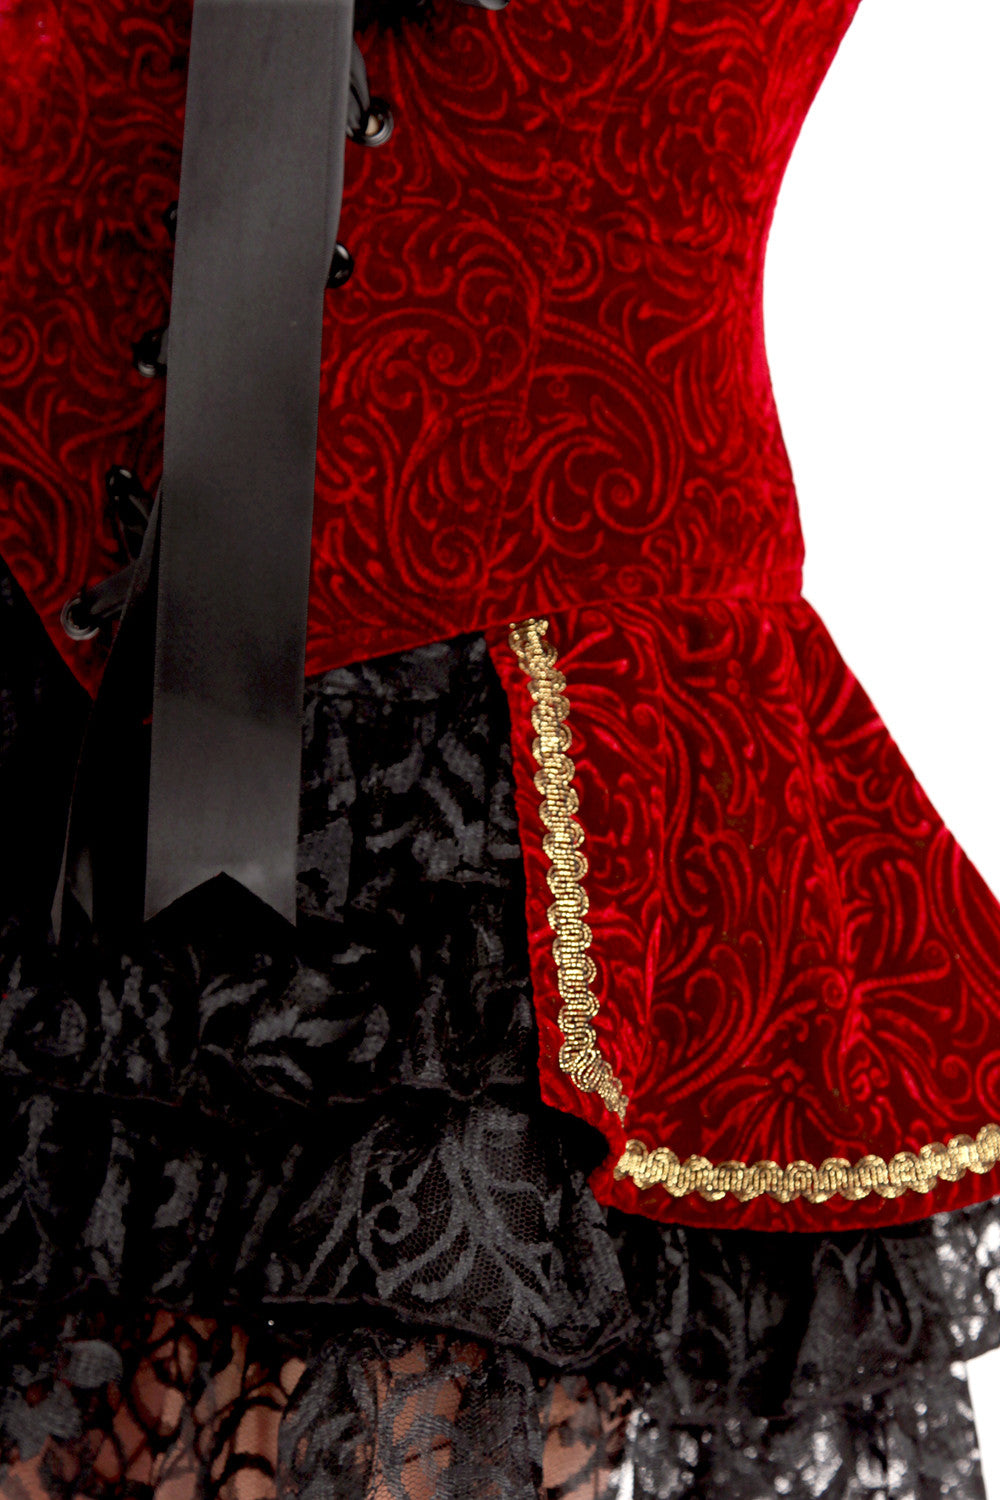 Velvet Courtesan Over Skirt